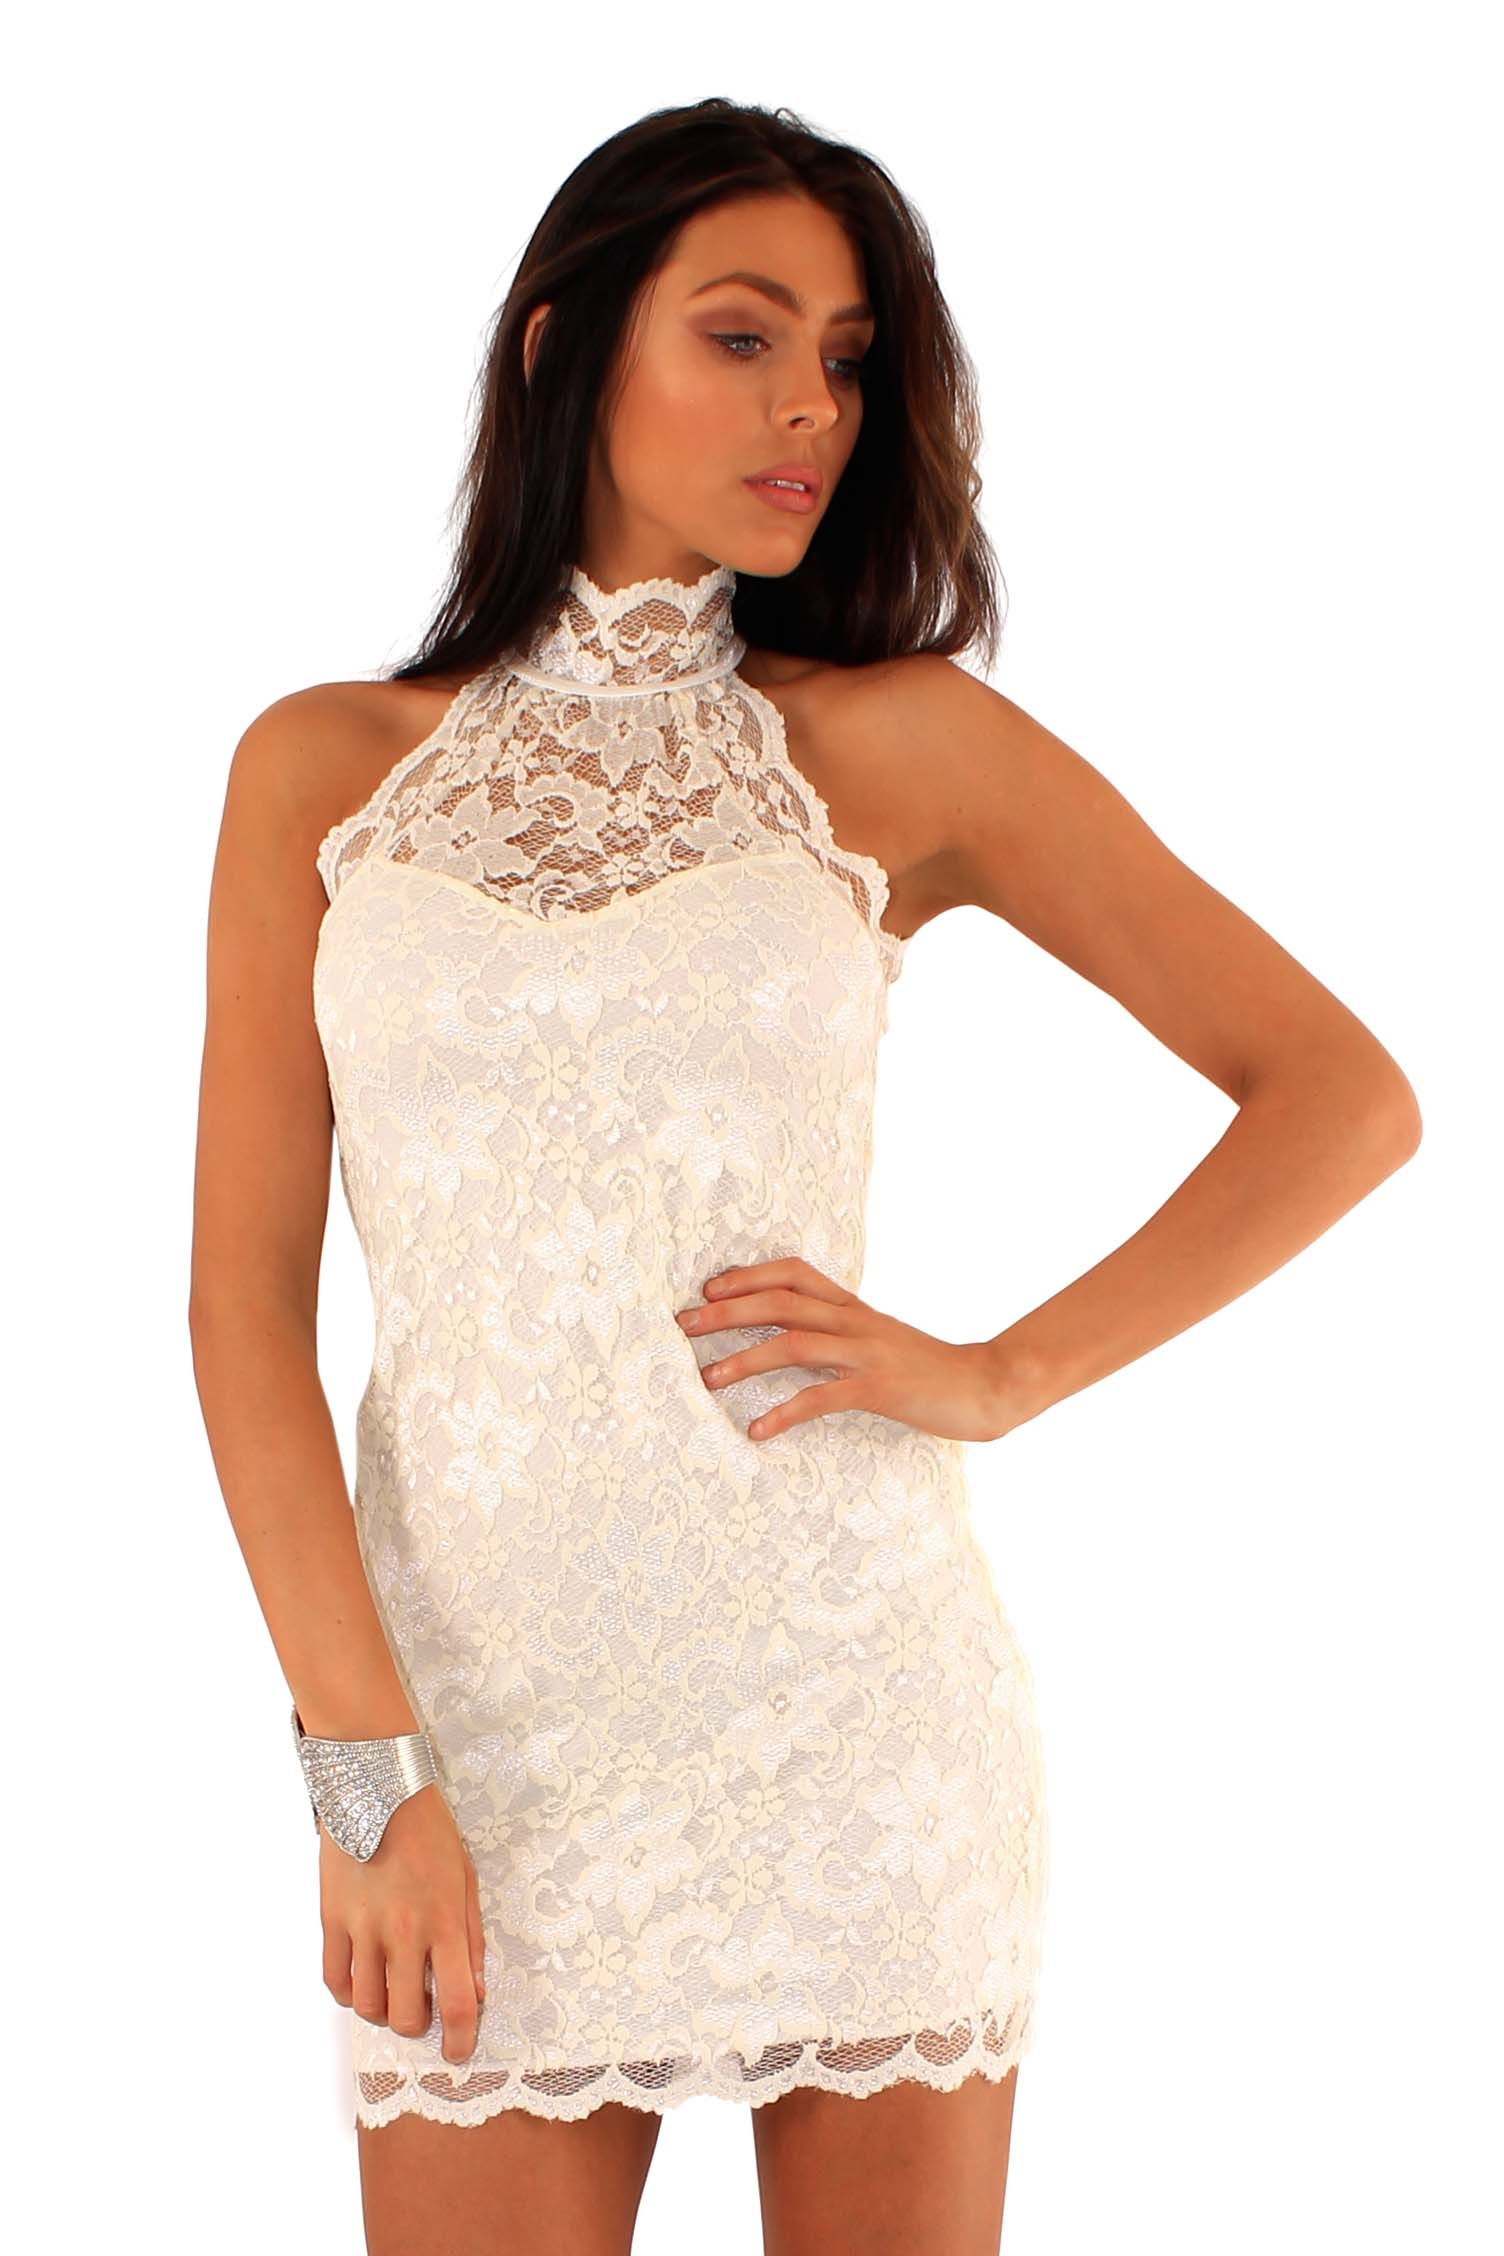 White Bodycon Halter Dress : Make You Look Thinner